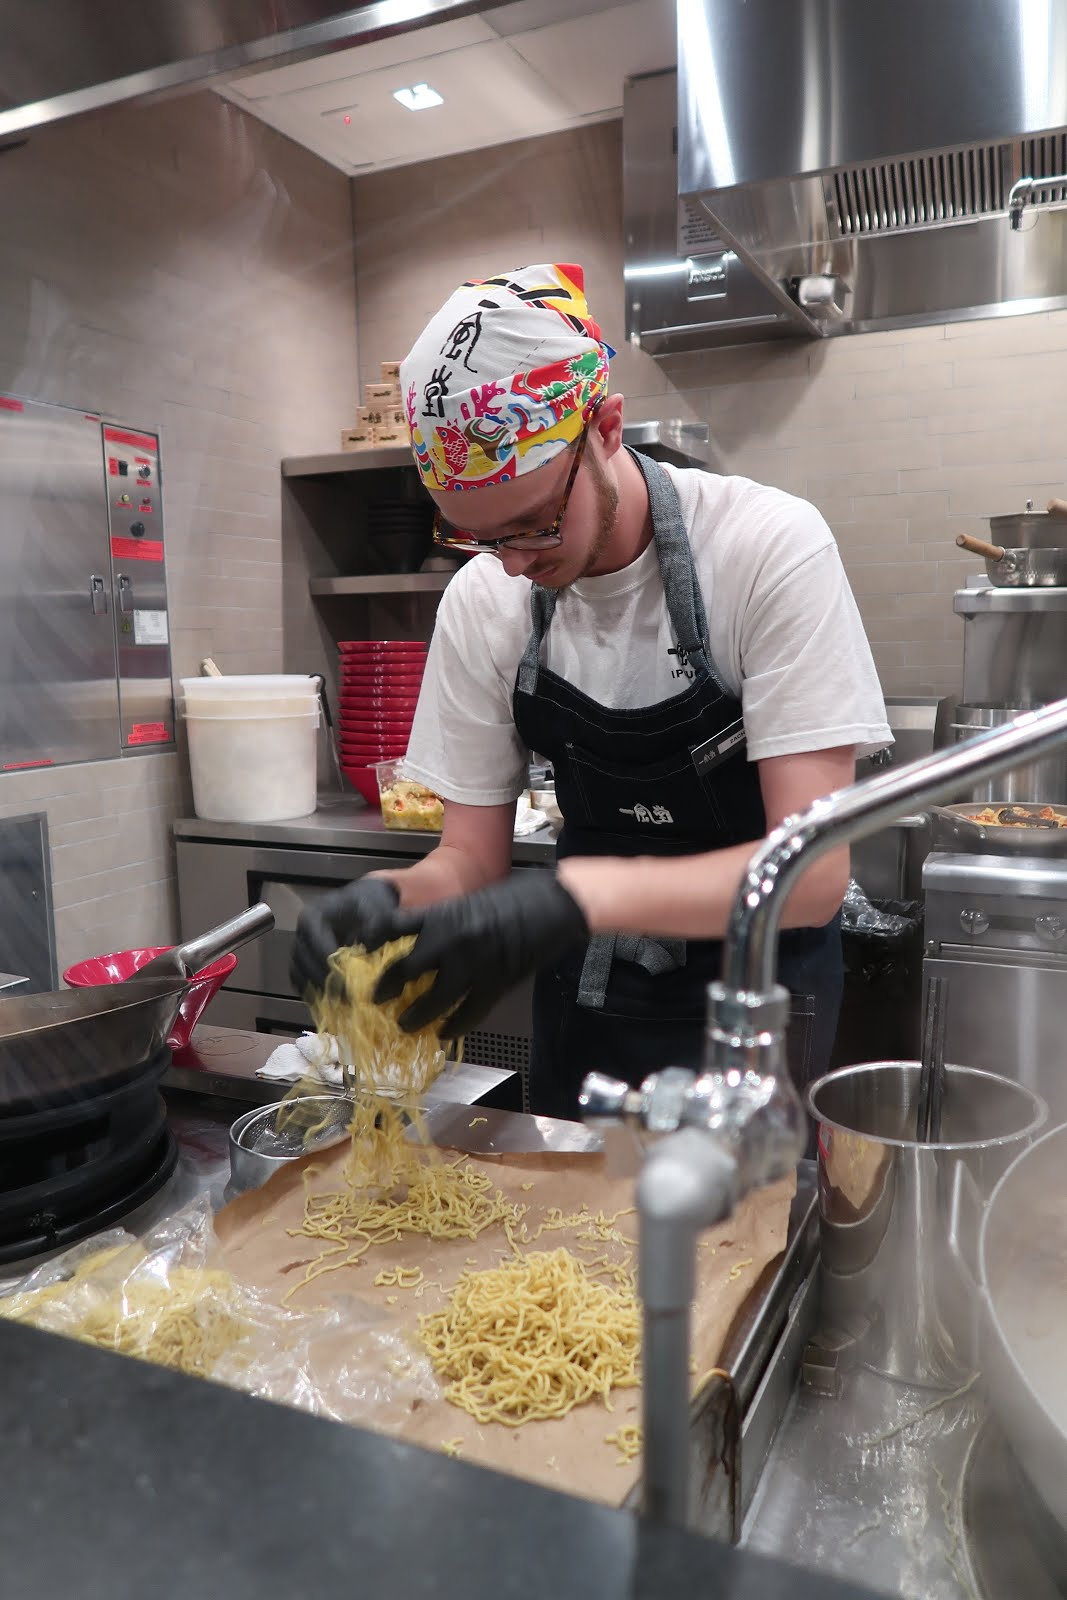 The ramen-making process at Ippudo's San Francisco opening.